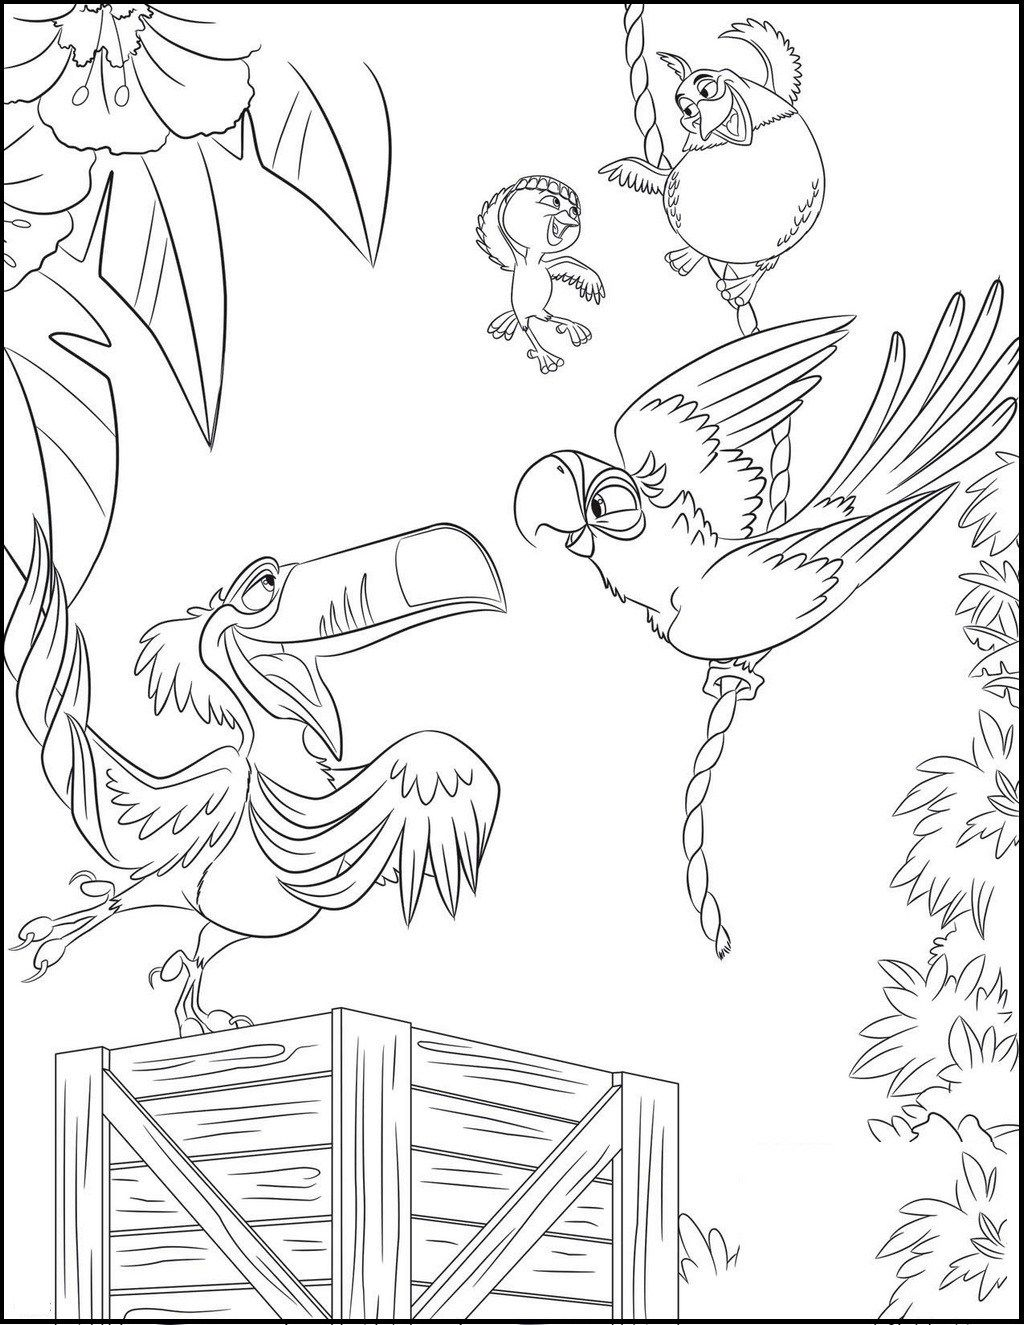 Rio Coloring And Drawing Page Coloring Pages Disney Coloring Pages Coloring Sheets